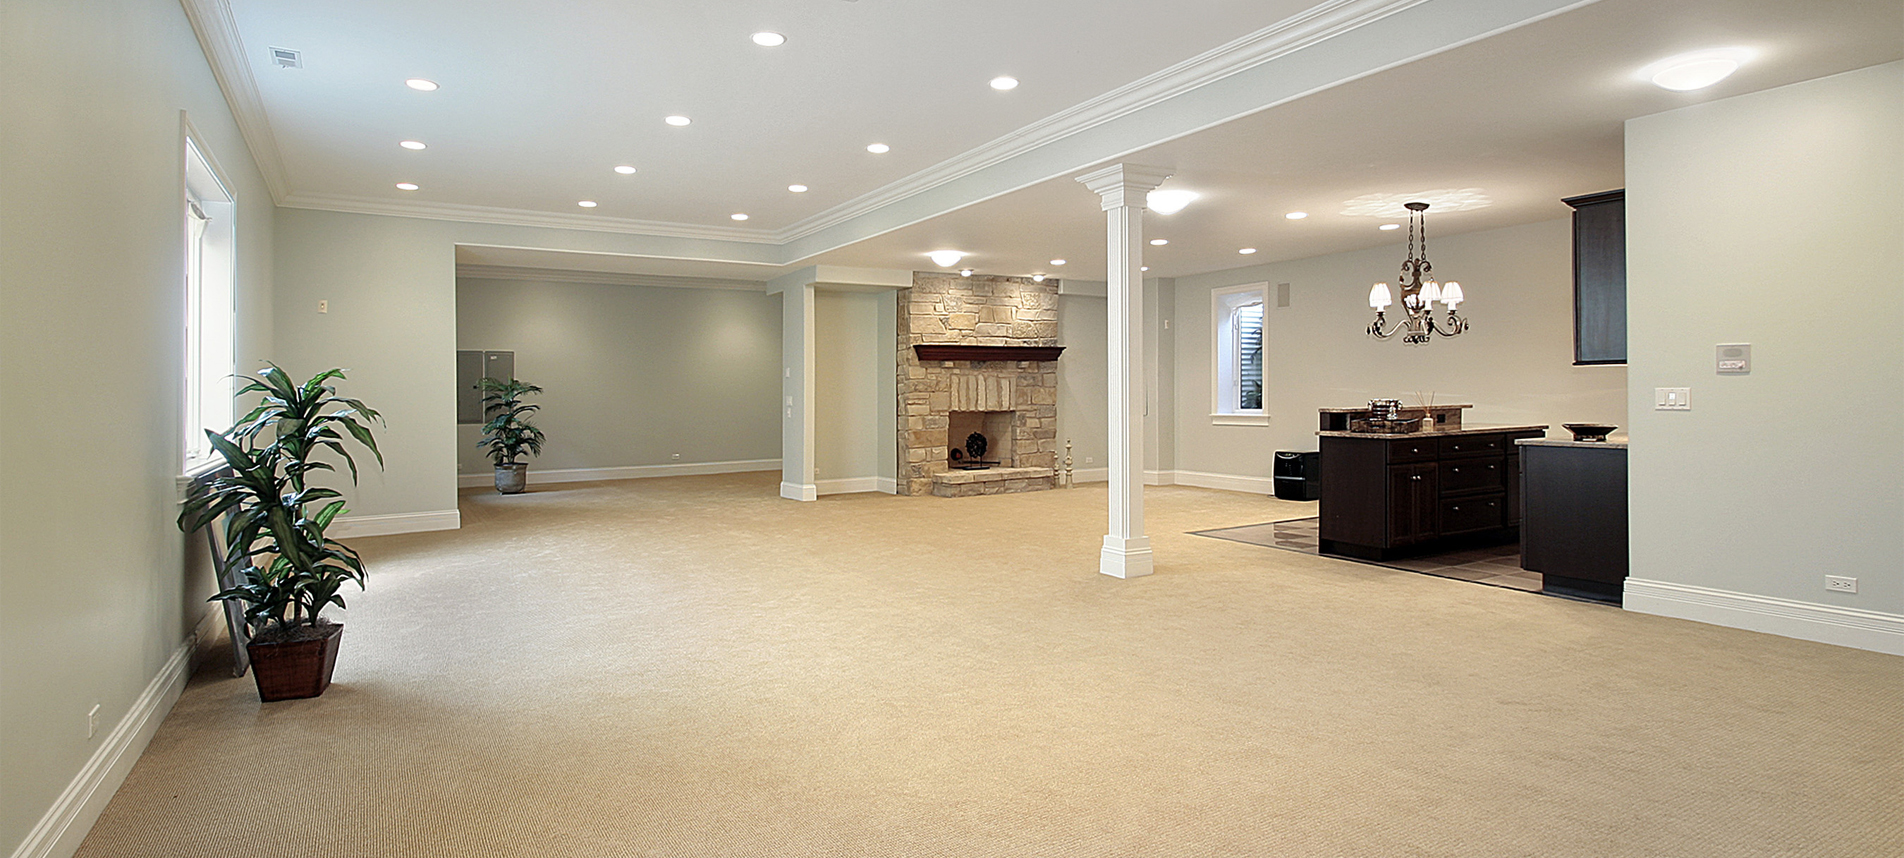 Carpet and Area Rugs